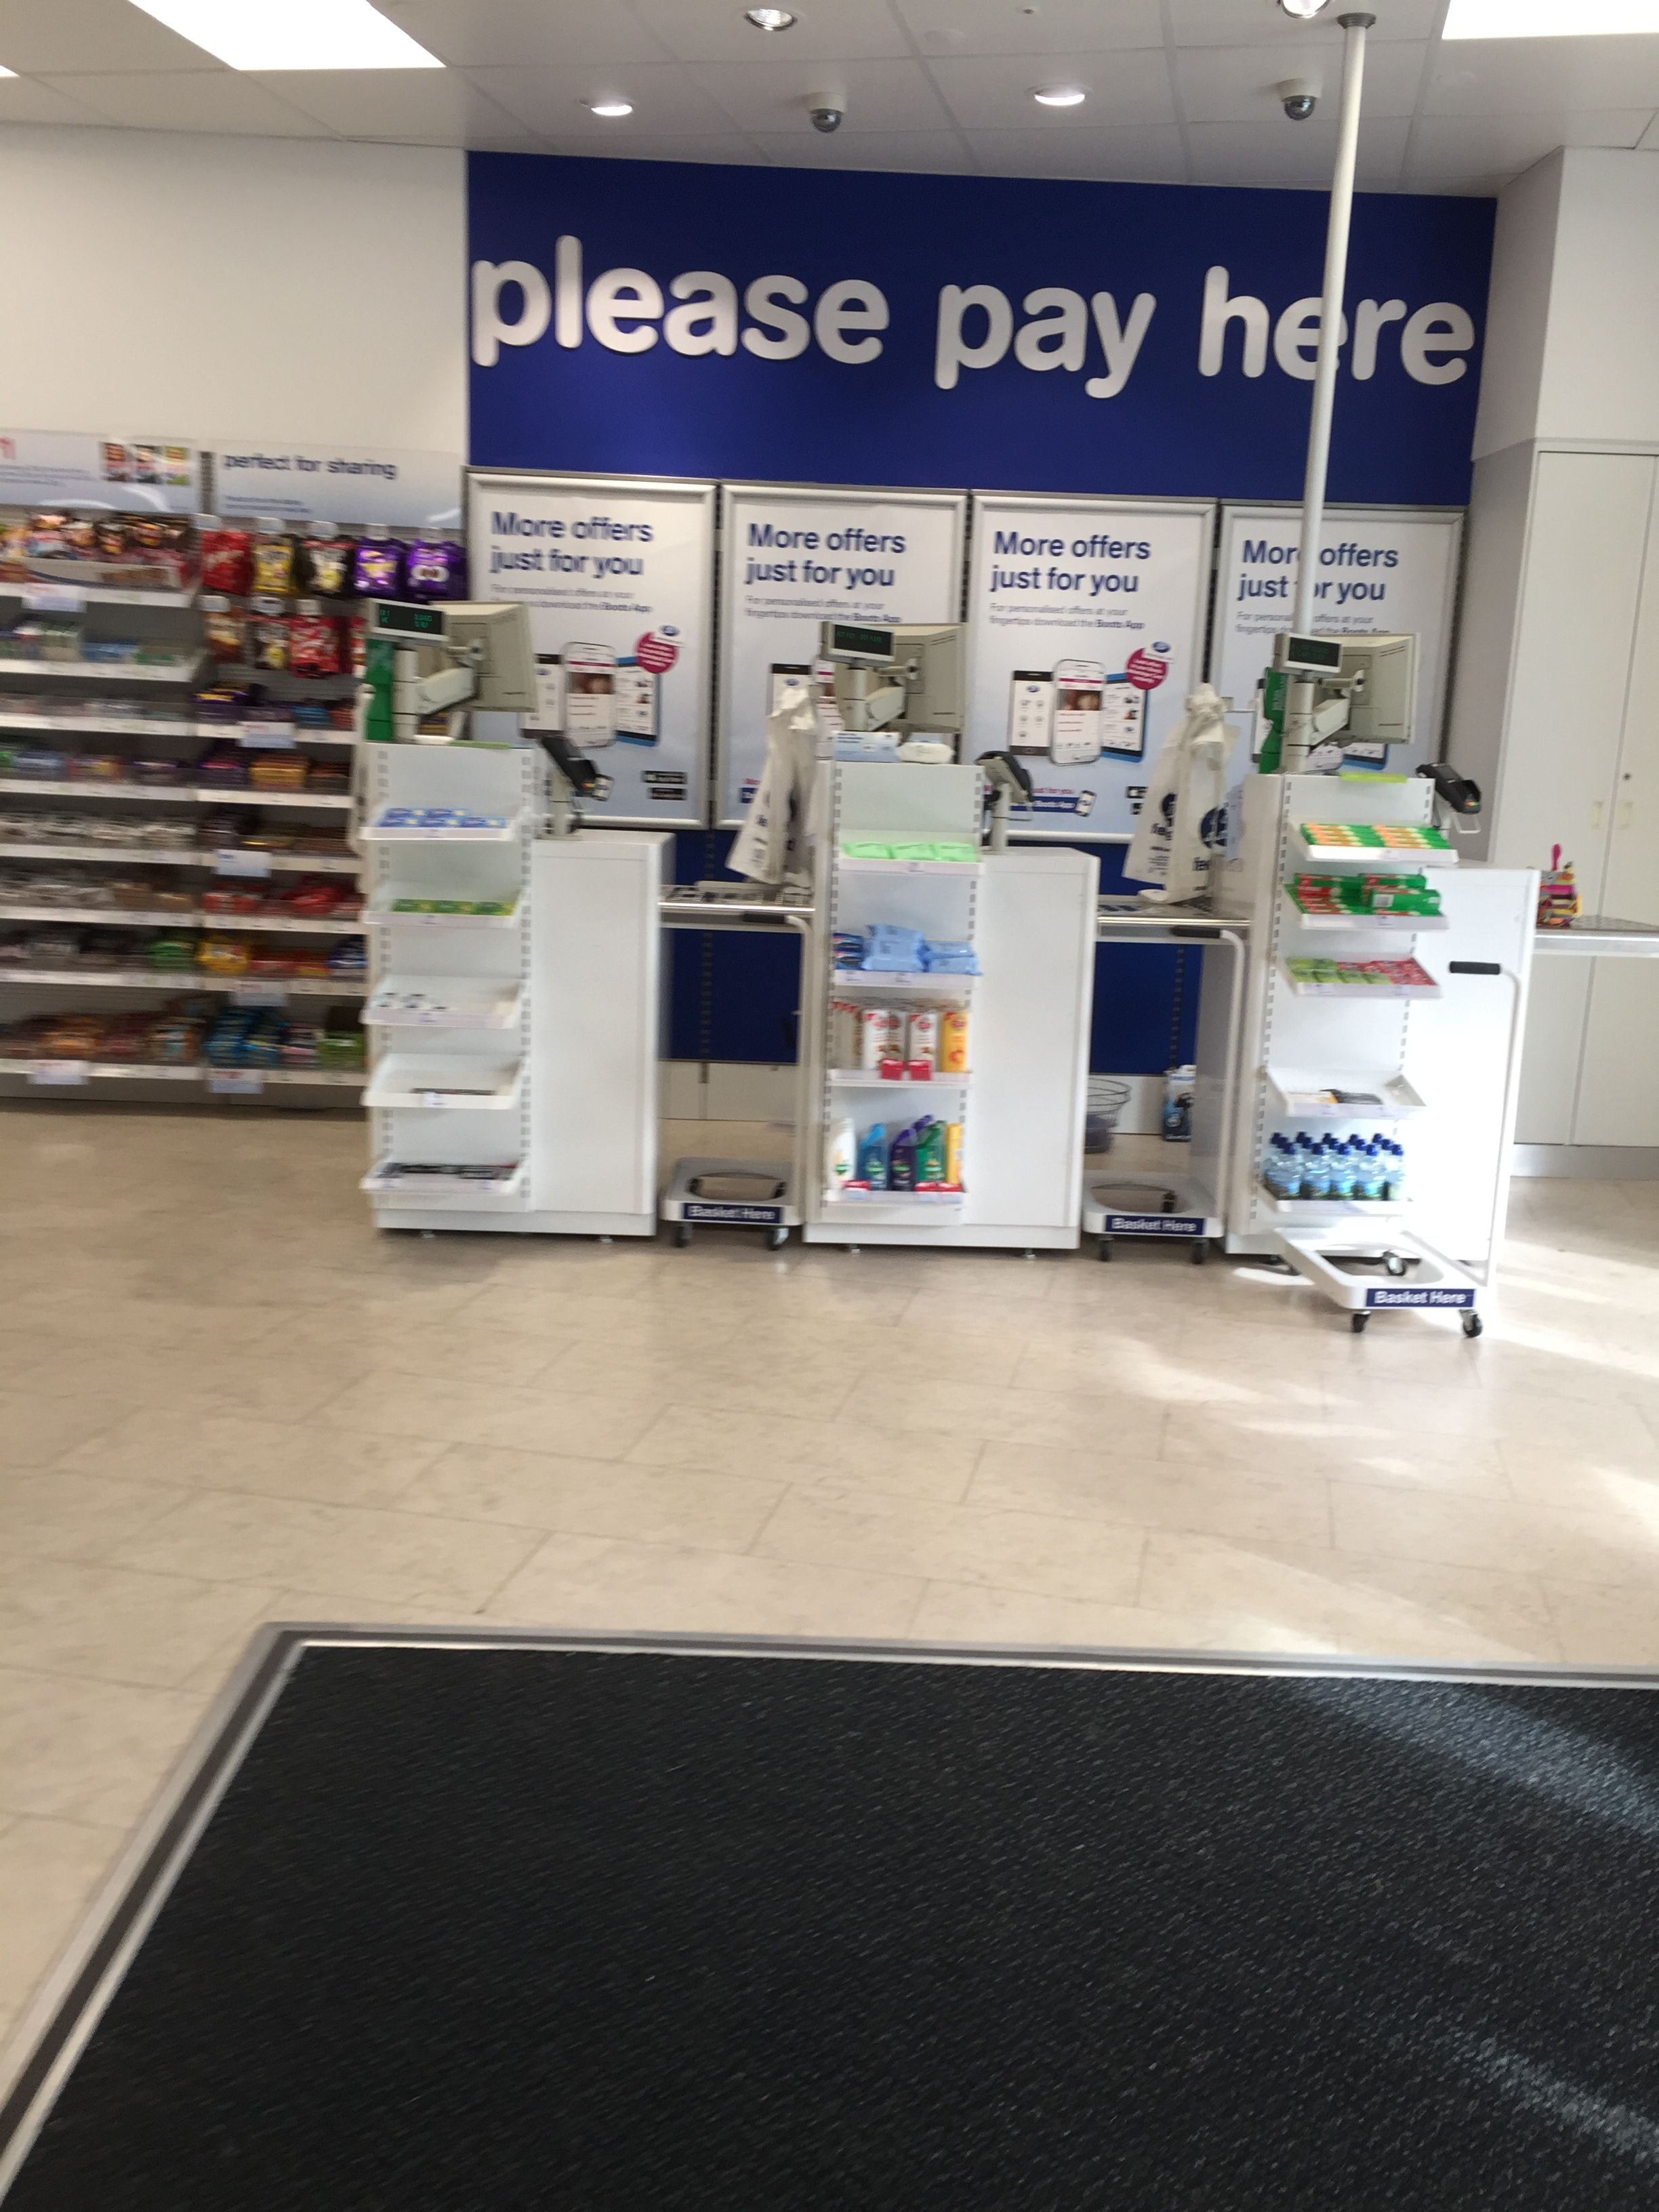 Boots the Chemist - Concept Store - order and collect - Internet - Layout -  Landscape